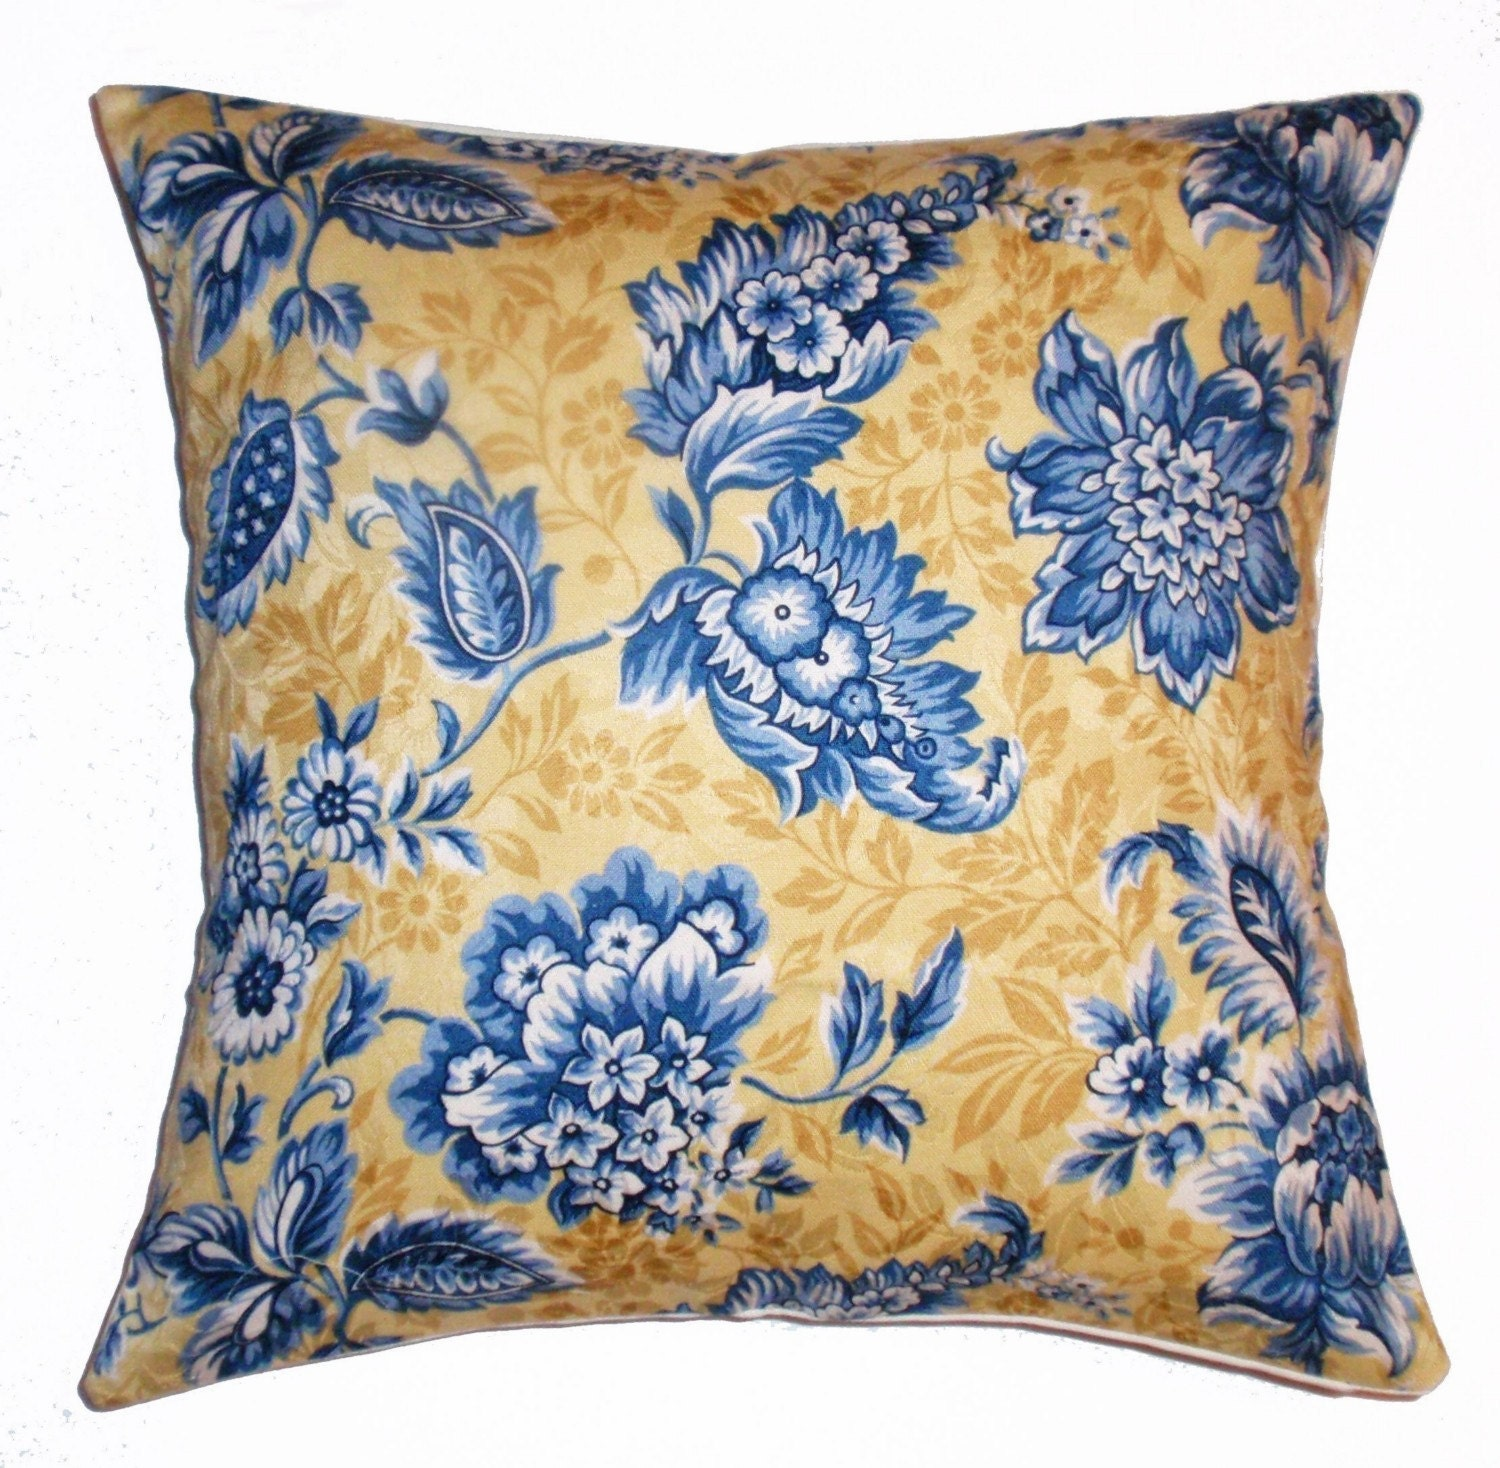 Country Blue Throw Pillows : Throw Pillow Cover 16x16 French Country Floral by PersnicketyHome